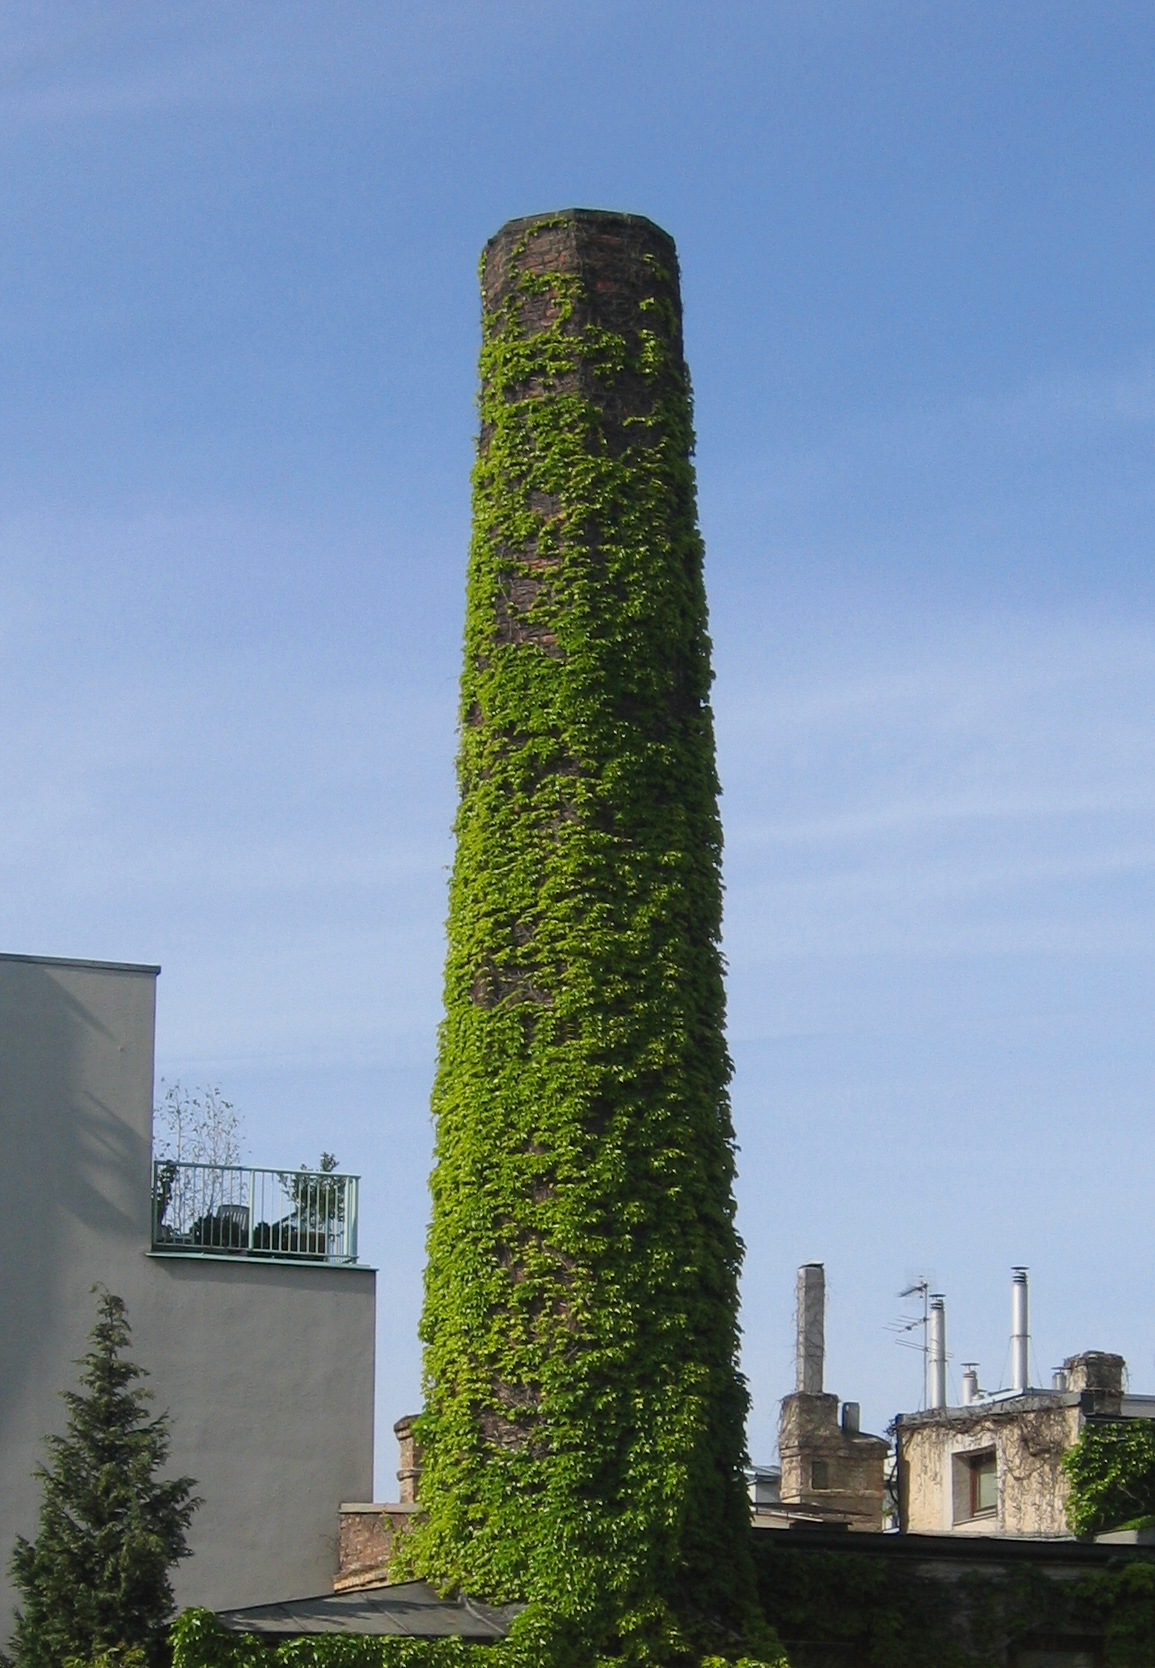 Climbing plant covering a chimney